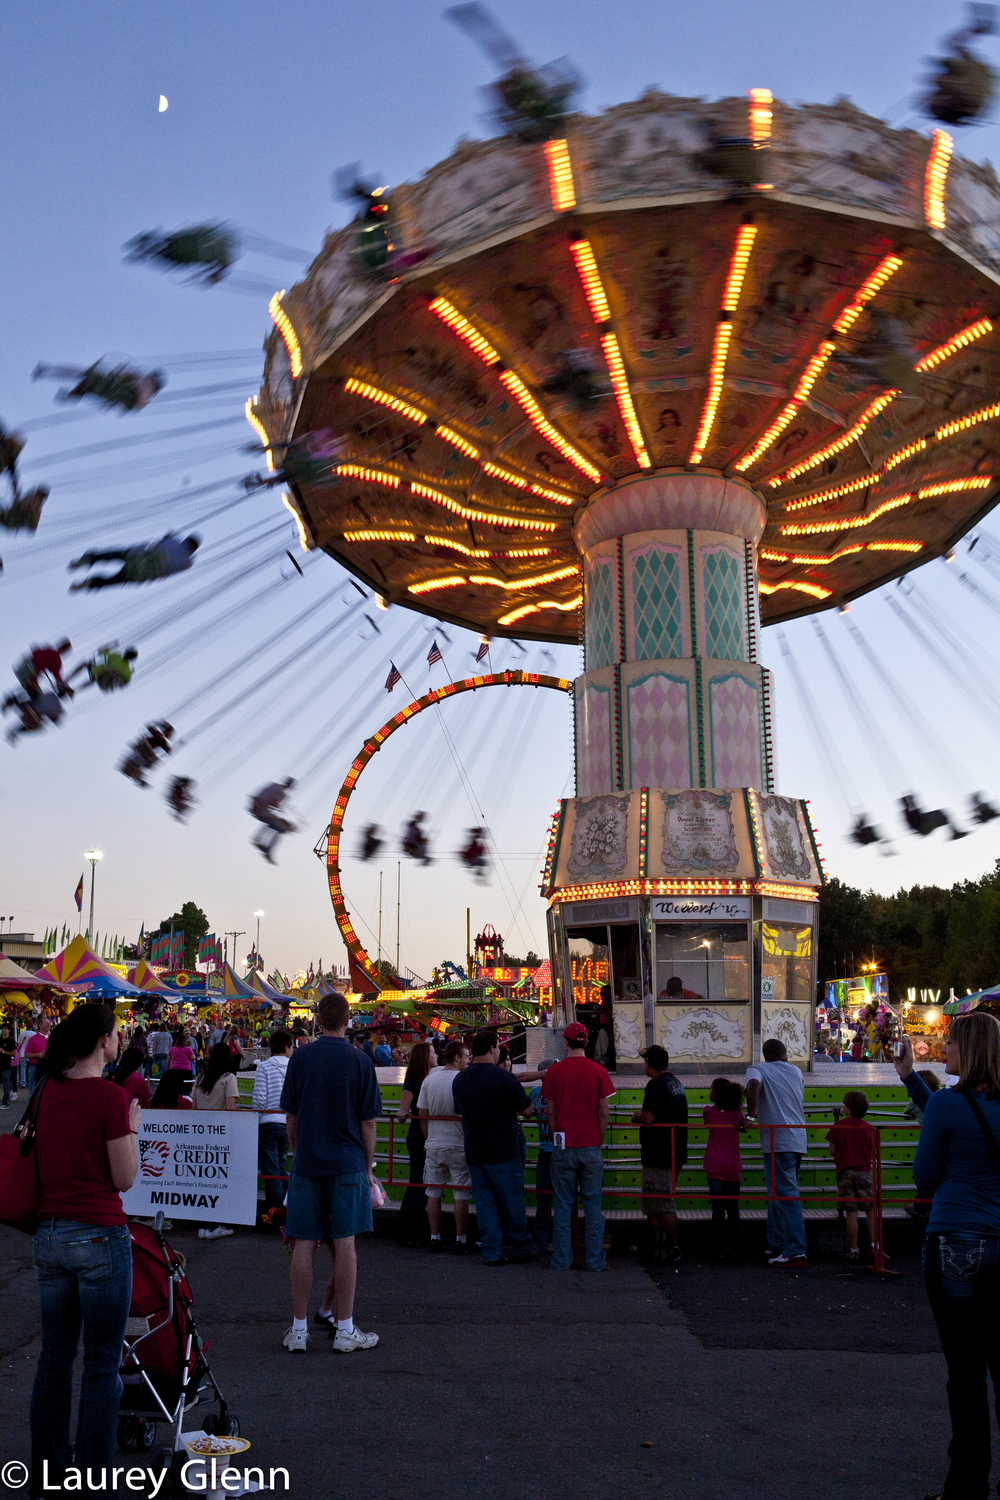 Arkansas State Fair, Little Rock, AR